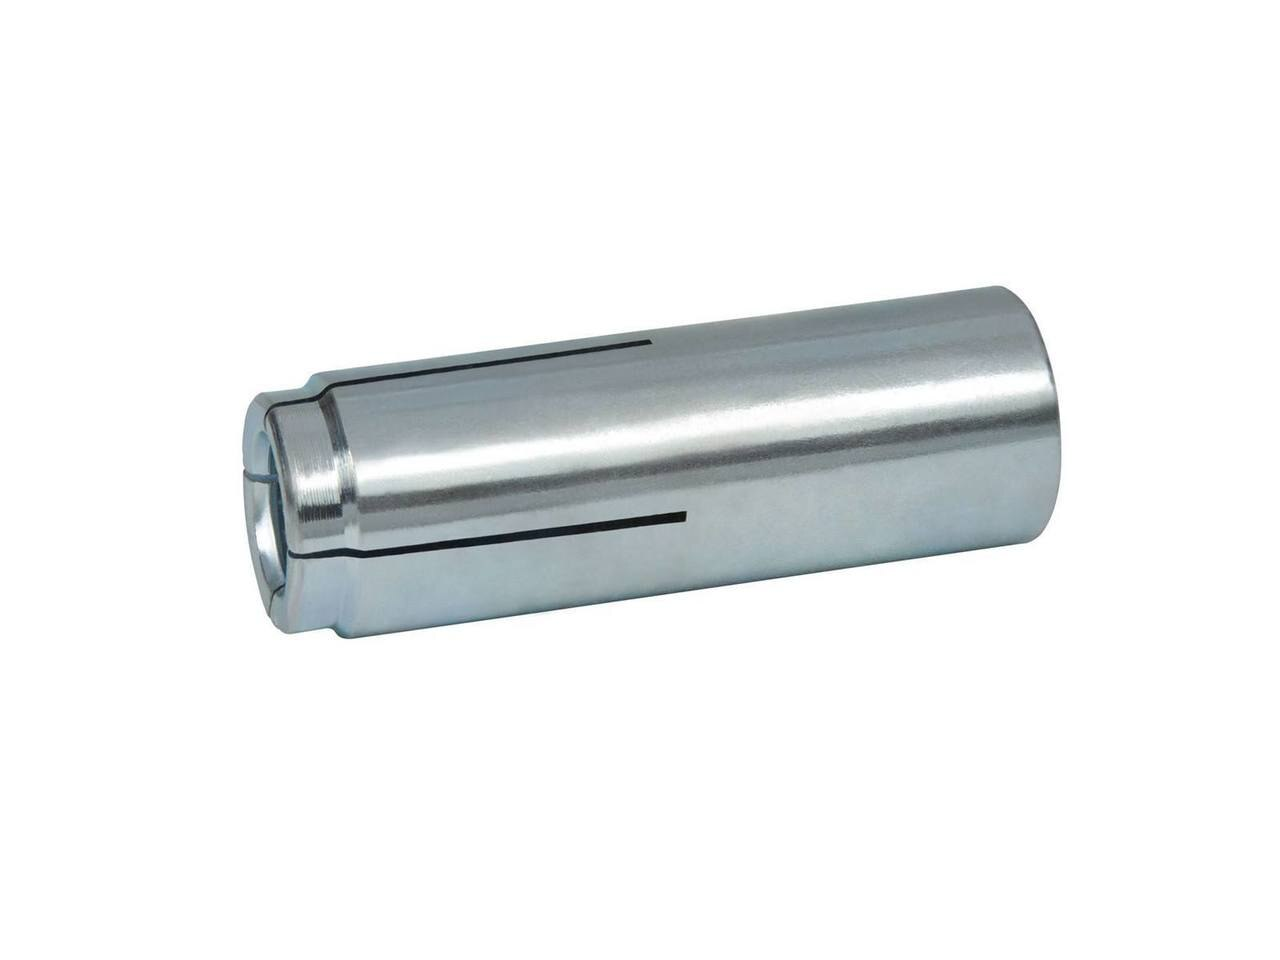 100 per Box CONFAST 1//4 x 2-1//4 304 Stainless Steel Acorn Sleeve Anchor